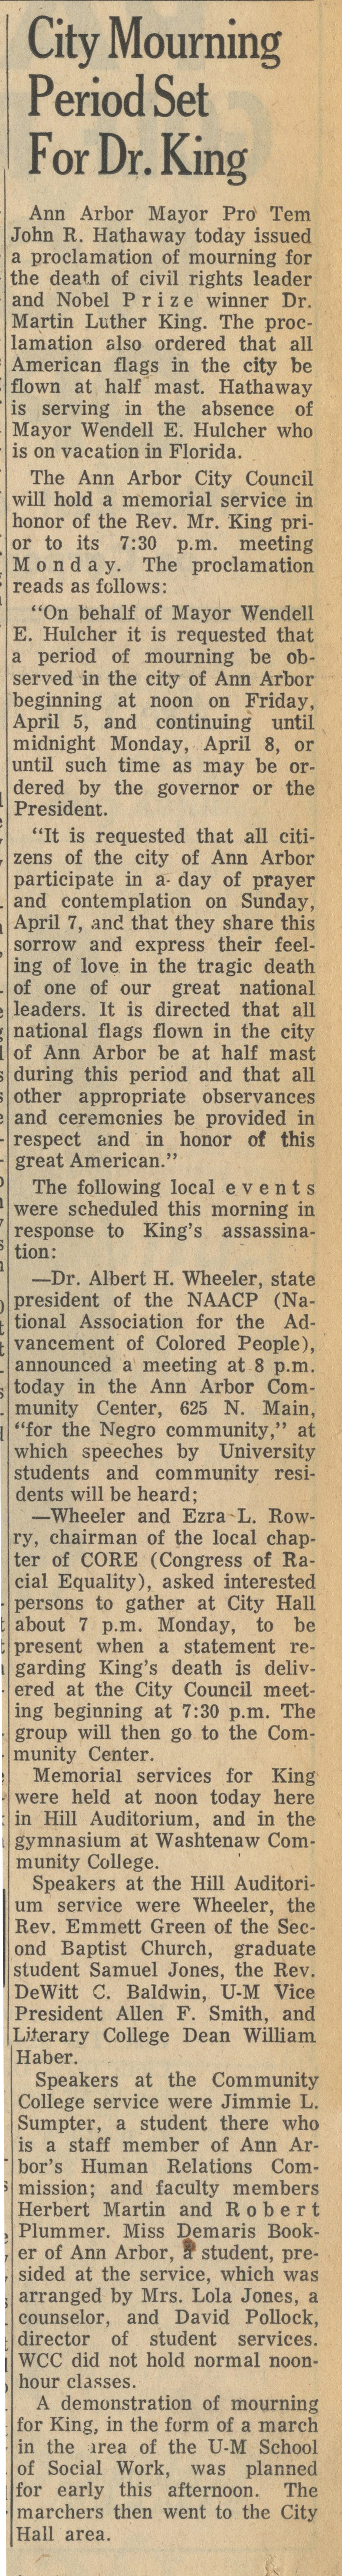 City Mourning Period Set For Dr. King image